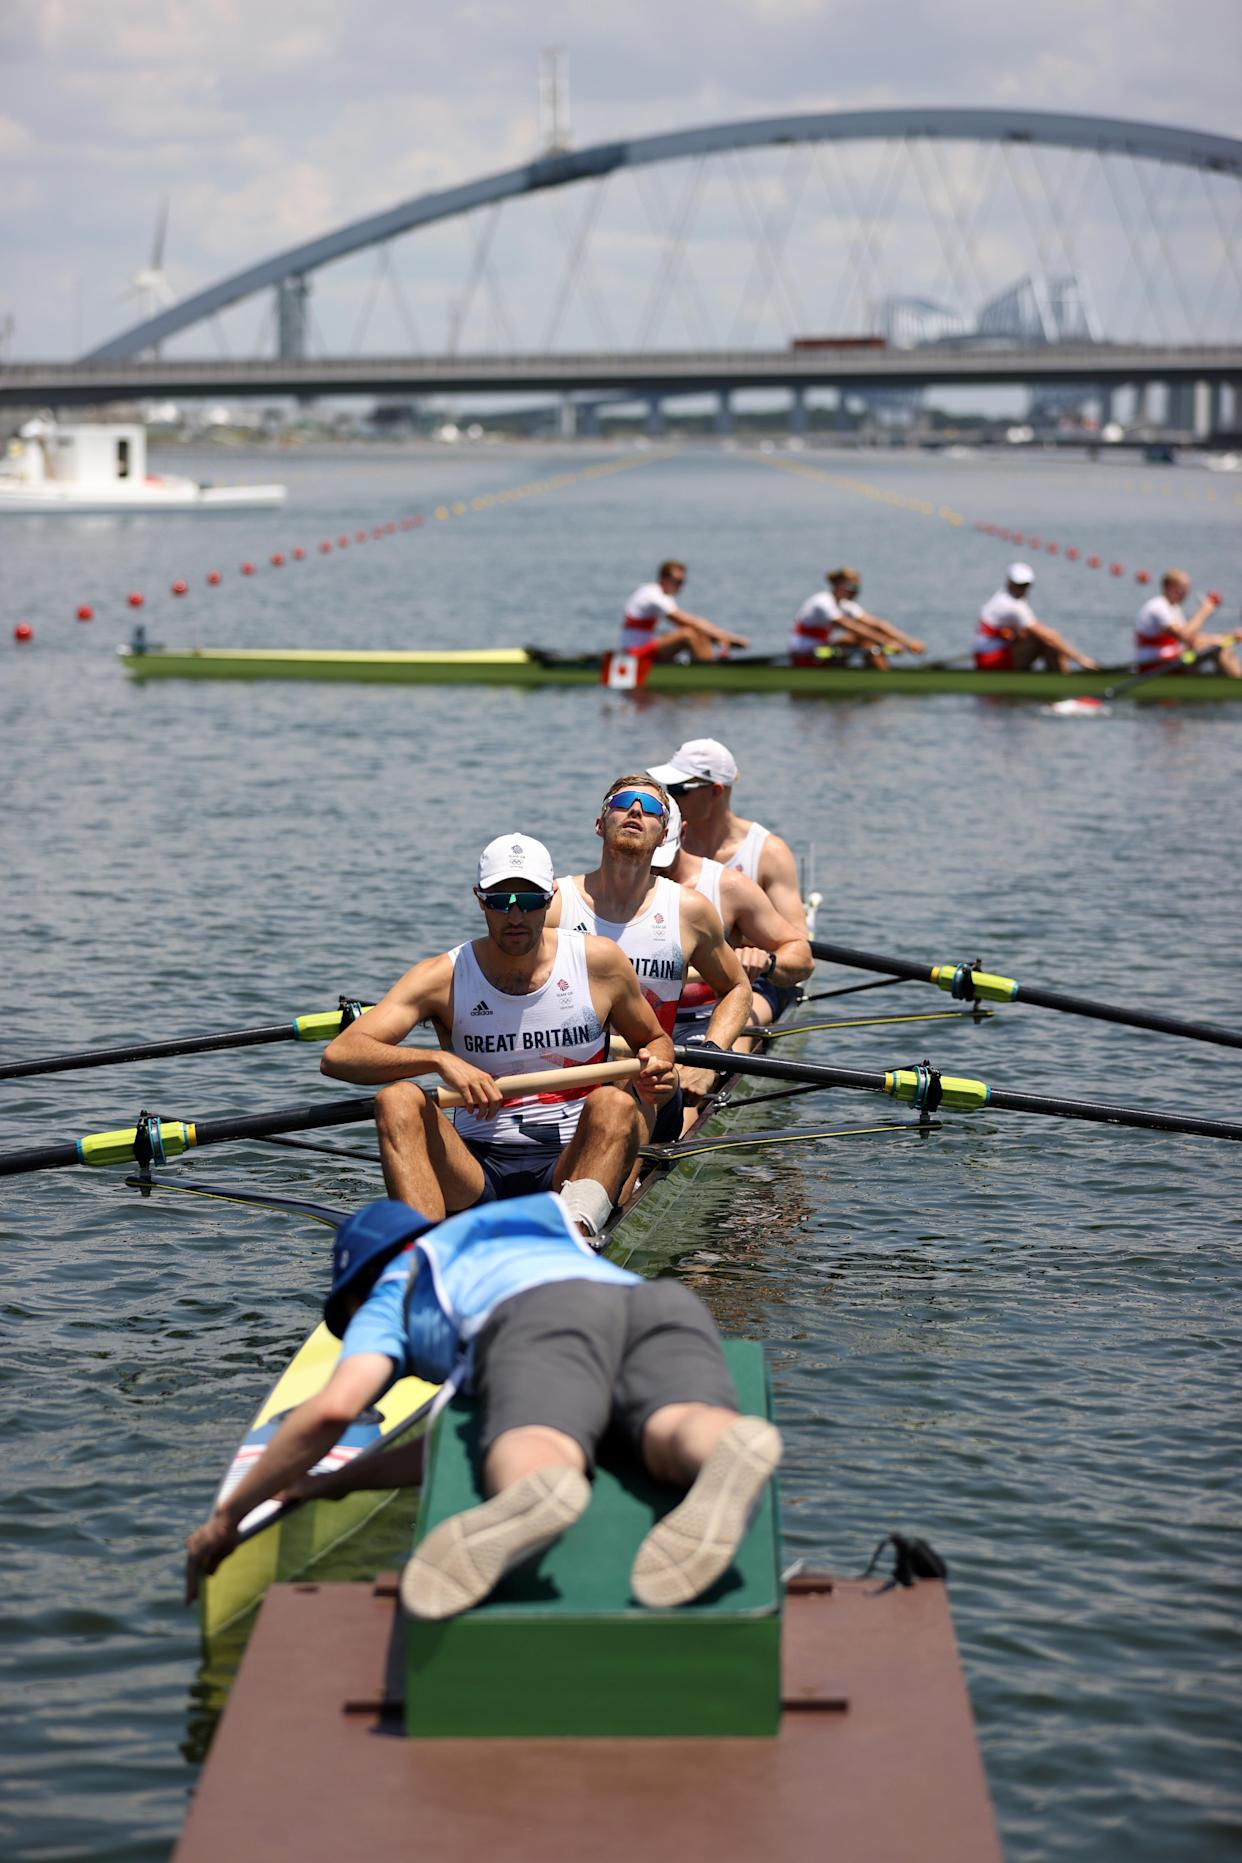 TOKYO, JAPAN - JULY 24:  (R-L) Oliver Cook, Matthew Rossiter, Rory Gibbs and Sholto Carnegie of Team Great Britain compete during the Men's Four Heat 2 on day one of the Tokyo 2020 Olympic Games at Sea Forest Waterway on July 24, 2021 in Tokyo, Japan. (Photo by Naomi Baker/Getty Images)